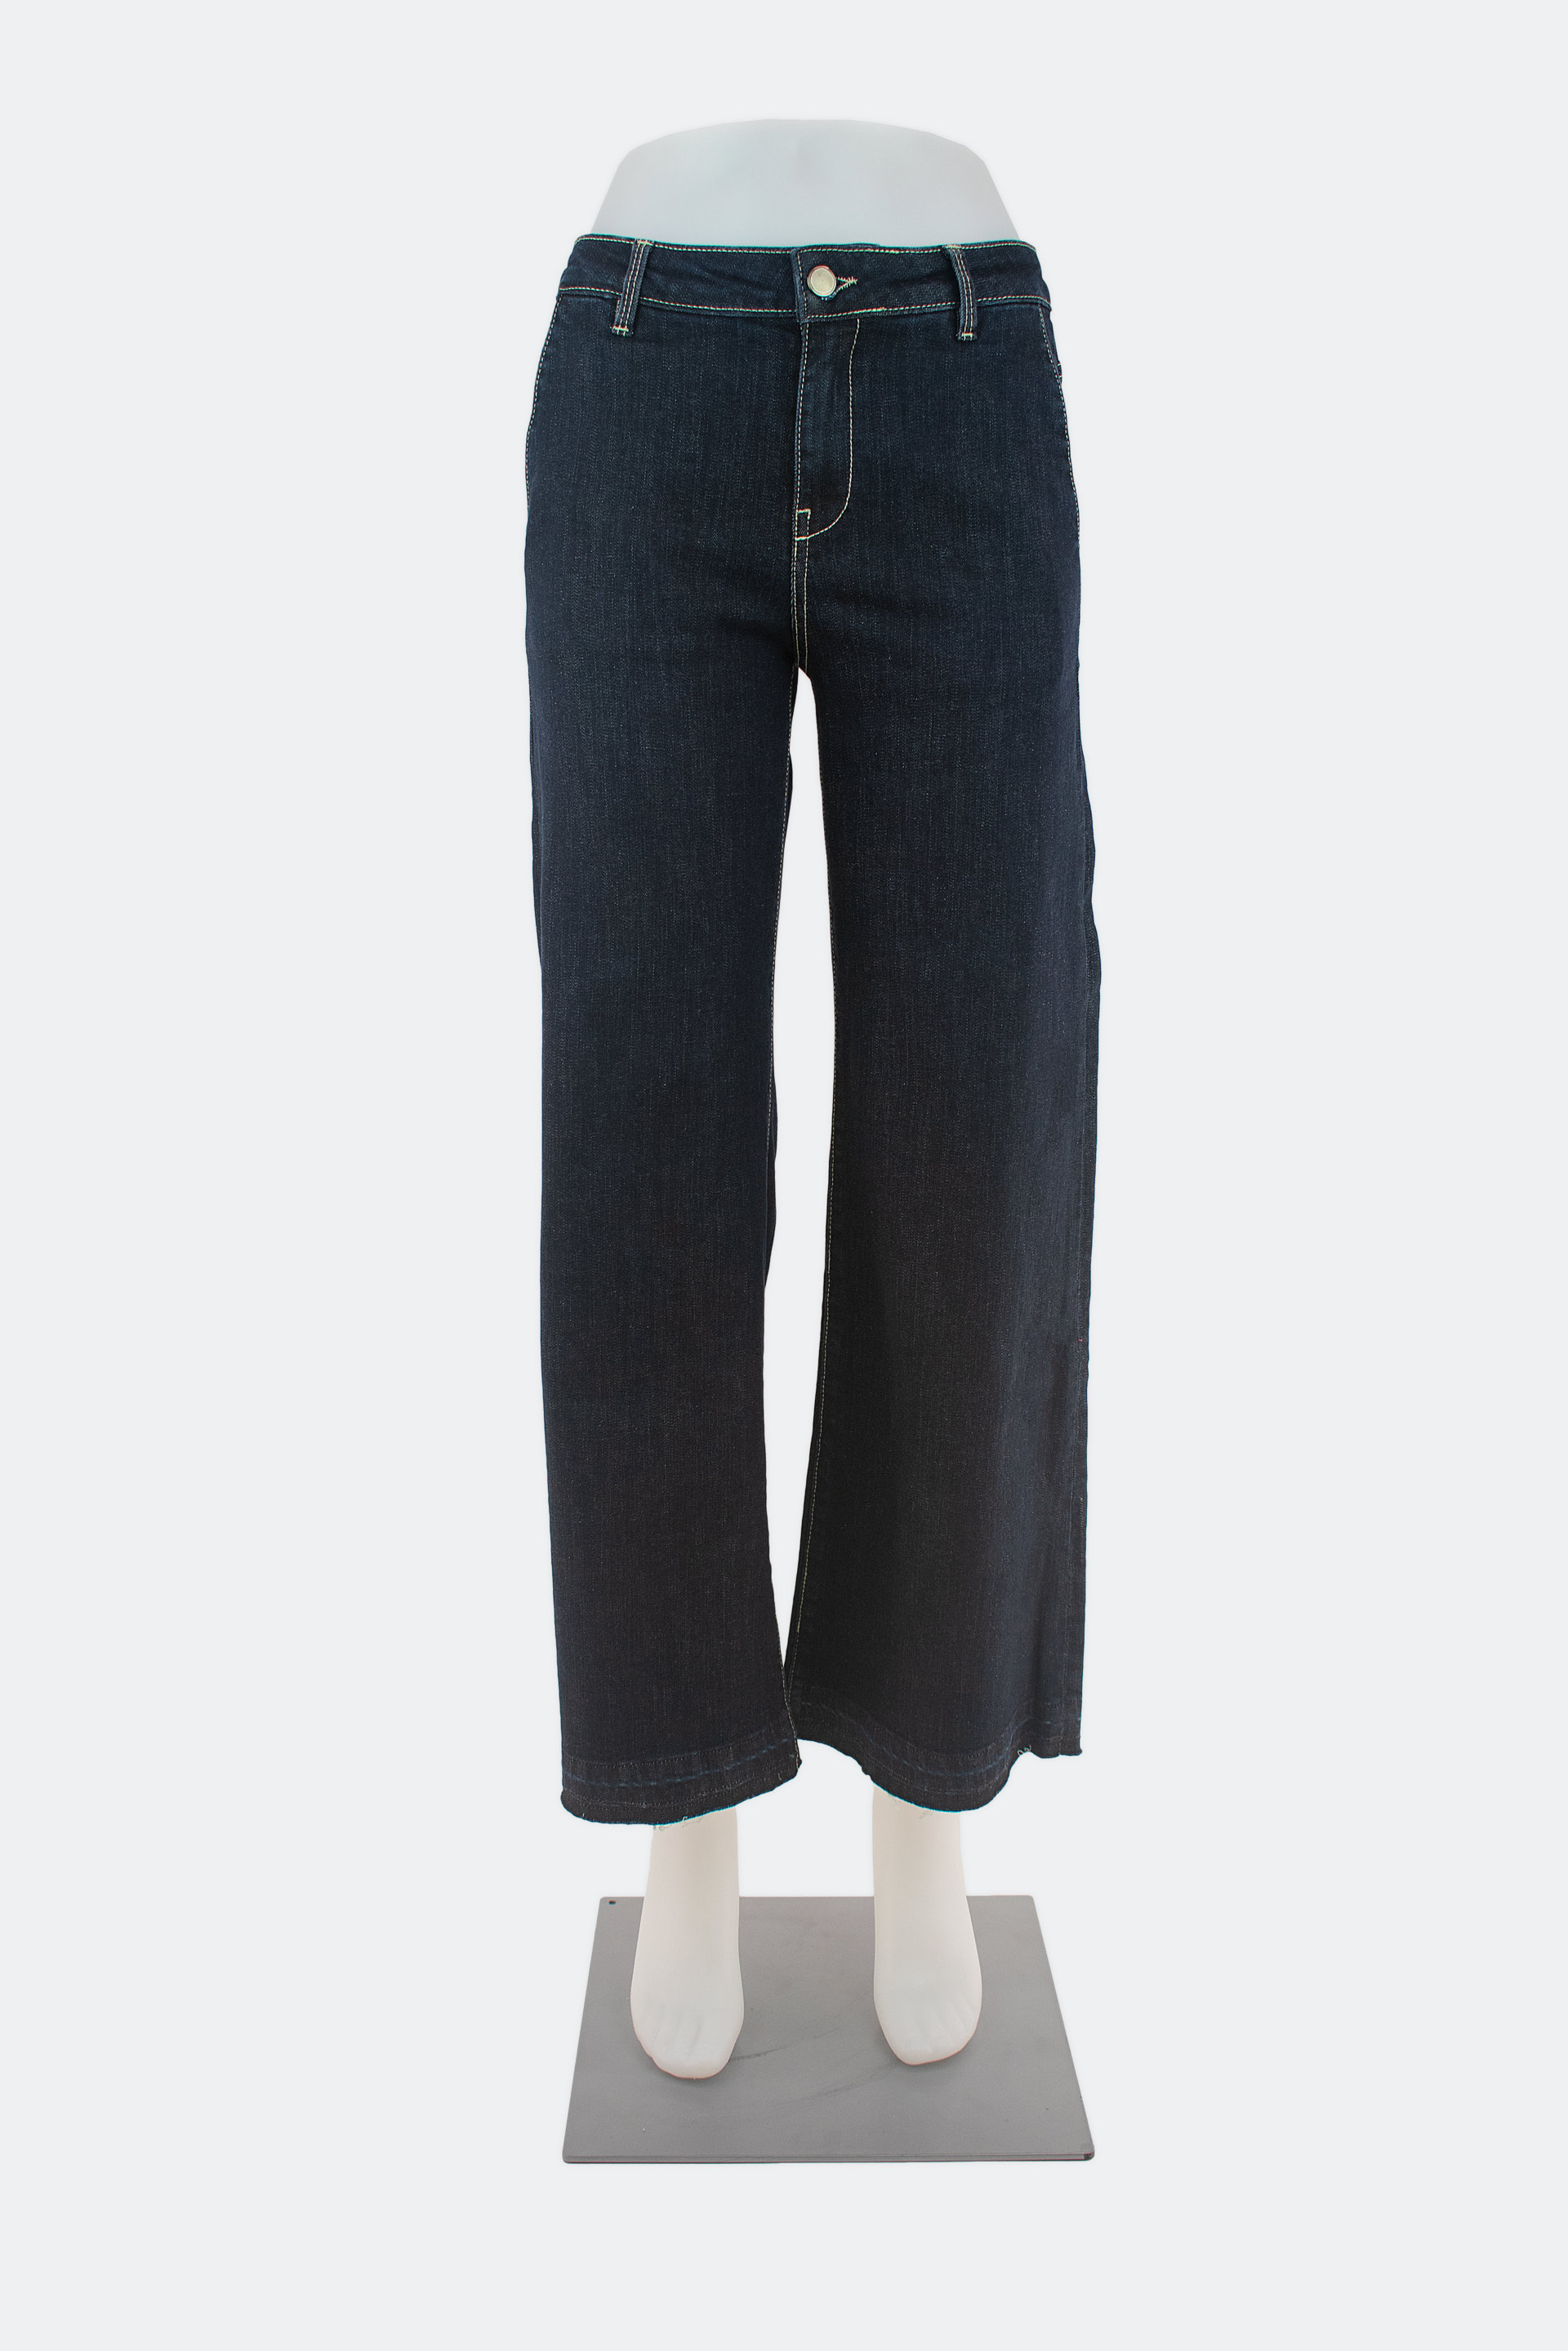 WST70626 blue black Jeans  largo